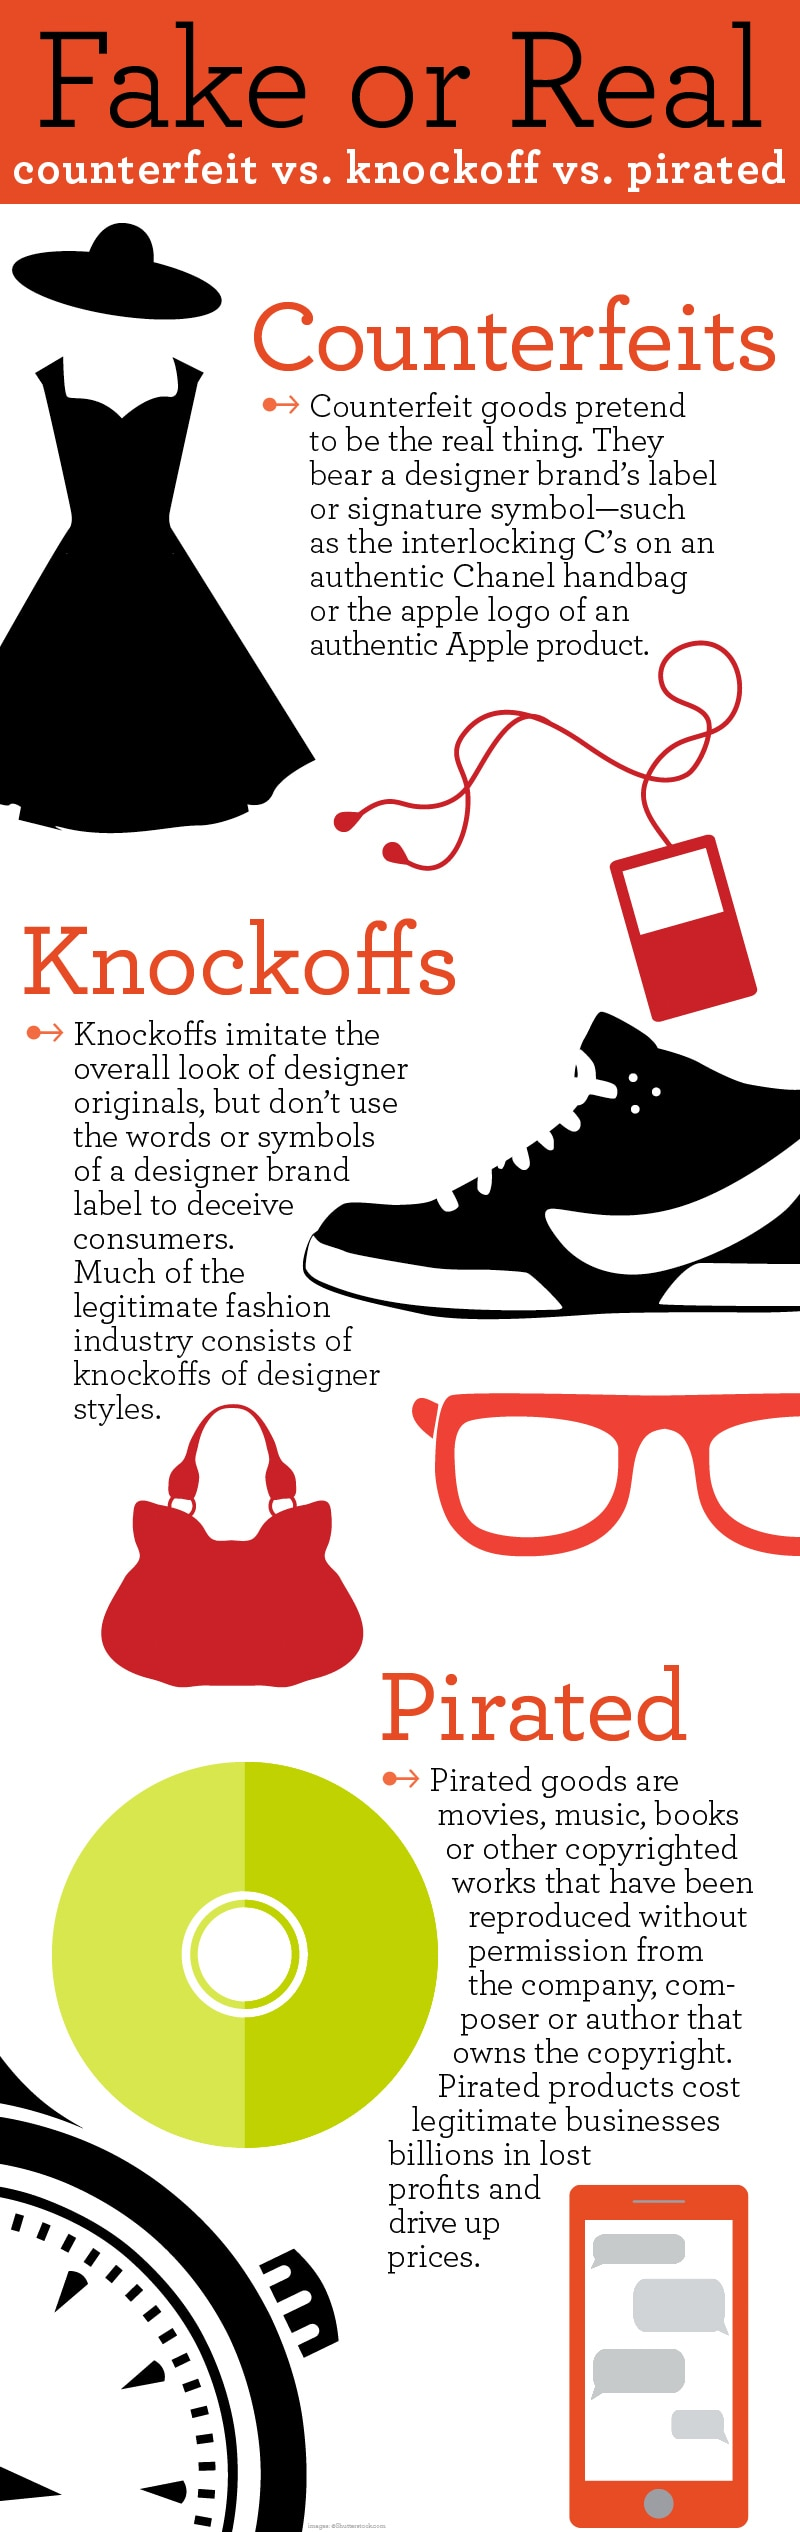 Graphic comparing counterfeits, knockoffs and pirated goods (D. Woolverton/State Dept.)